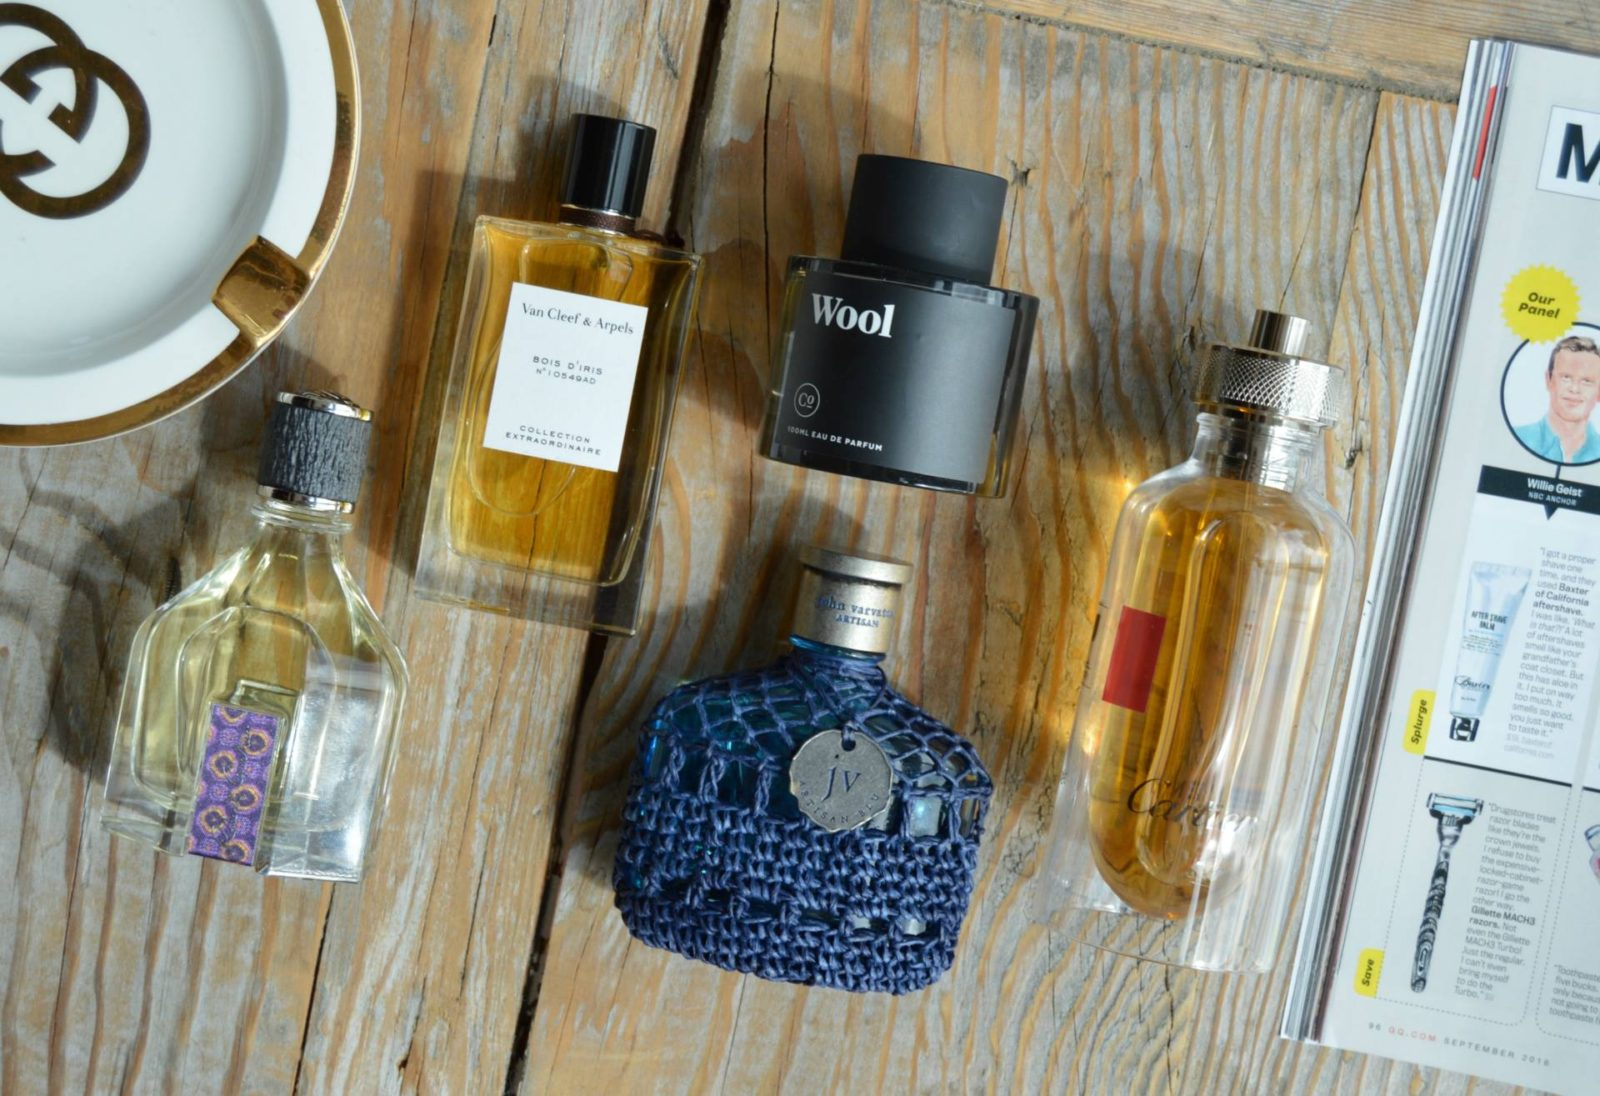 My go-to Fall fragrances ft. Cartier, Commodity Goods, Robert Graham, Van Cleef & Arpels and John Varvatos